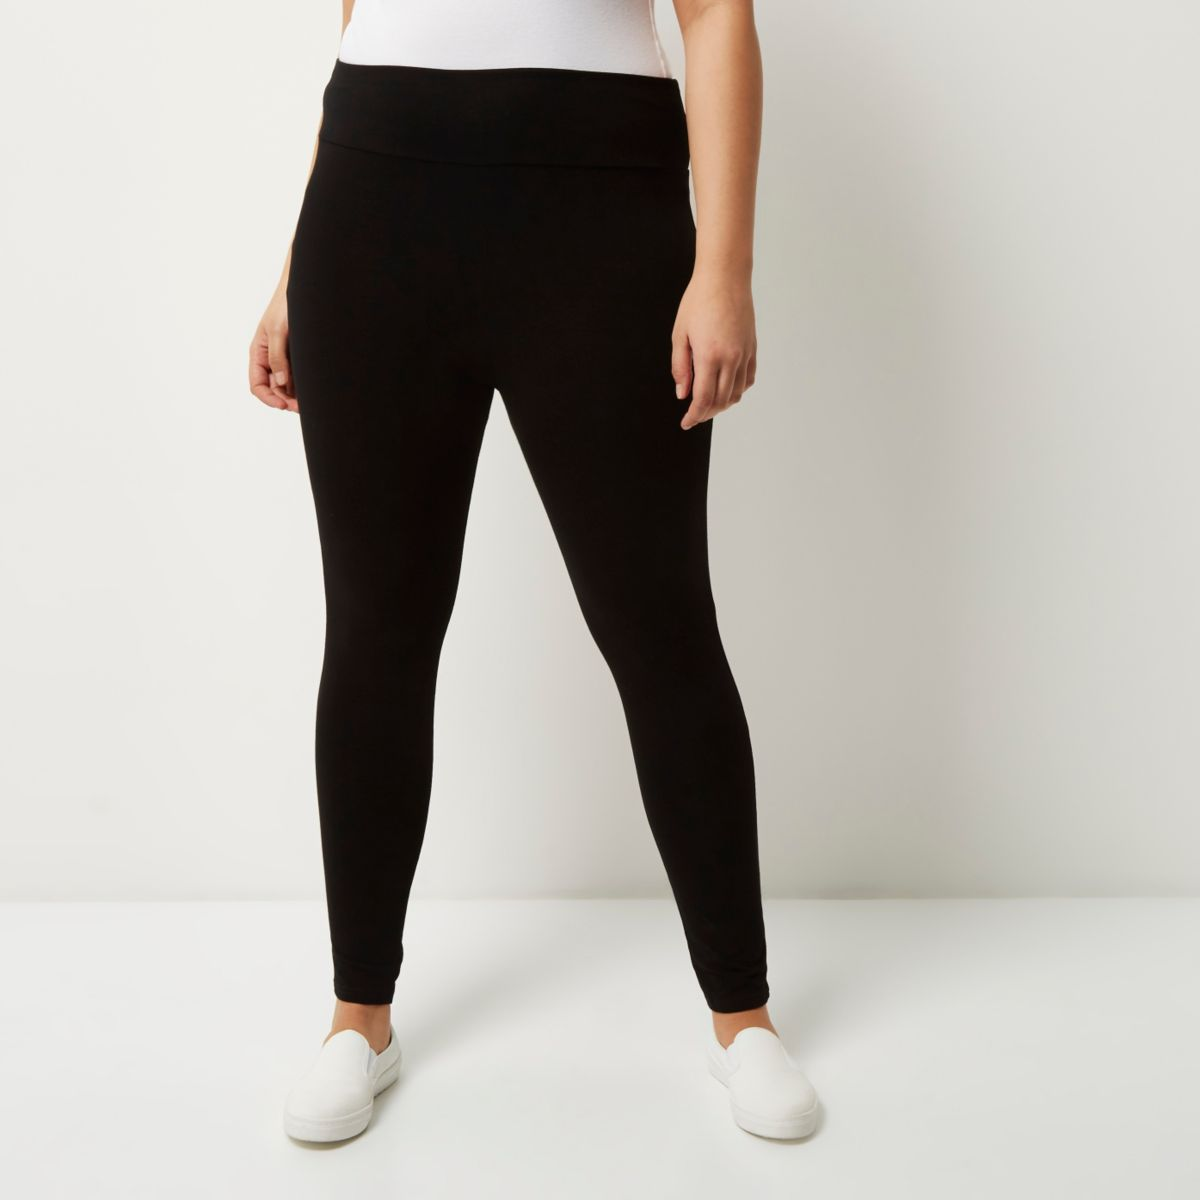 Plus black high rise leggings